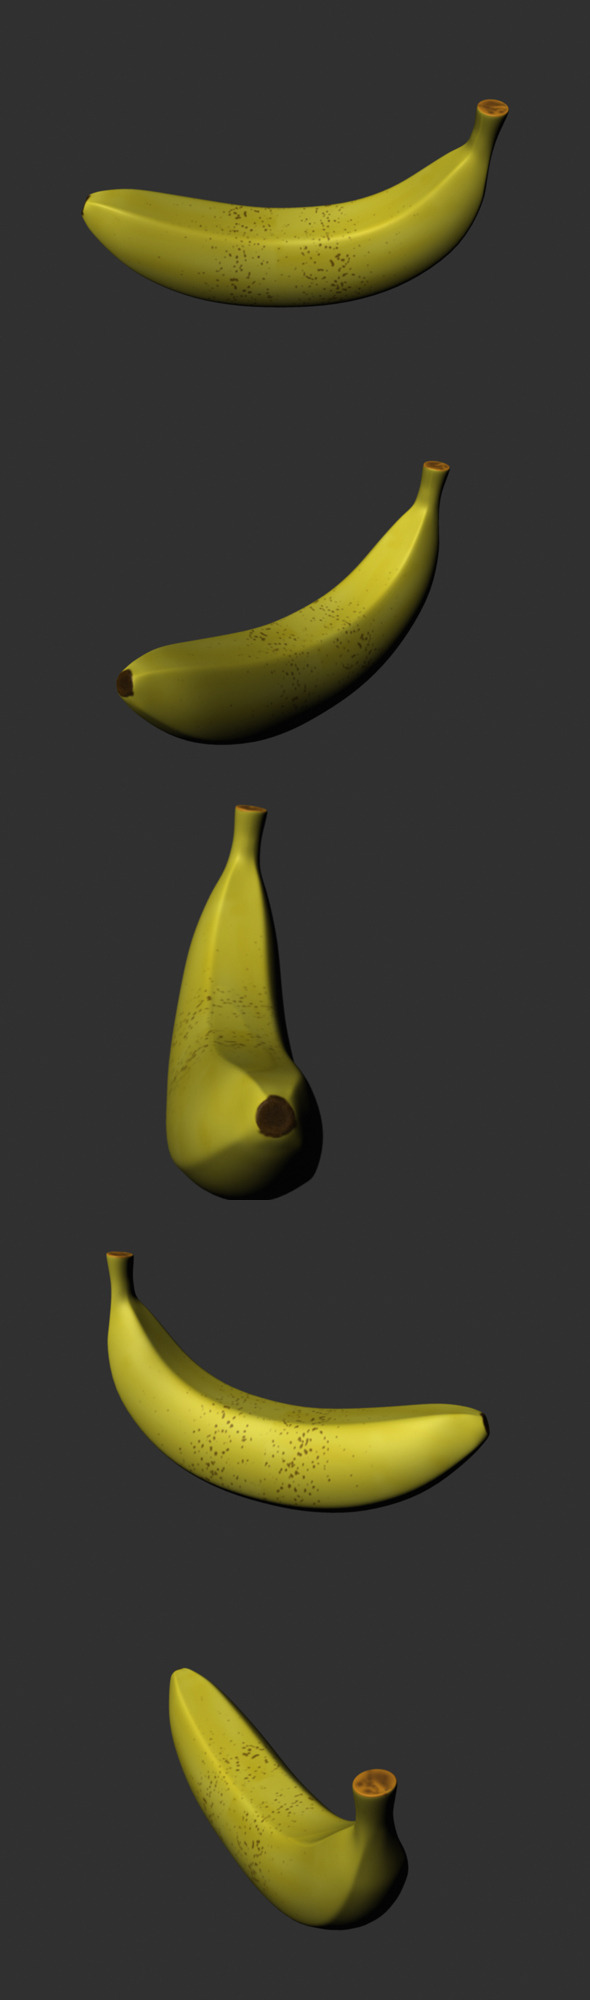 Banana Model - 3DOcean Item for Sale